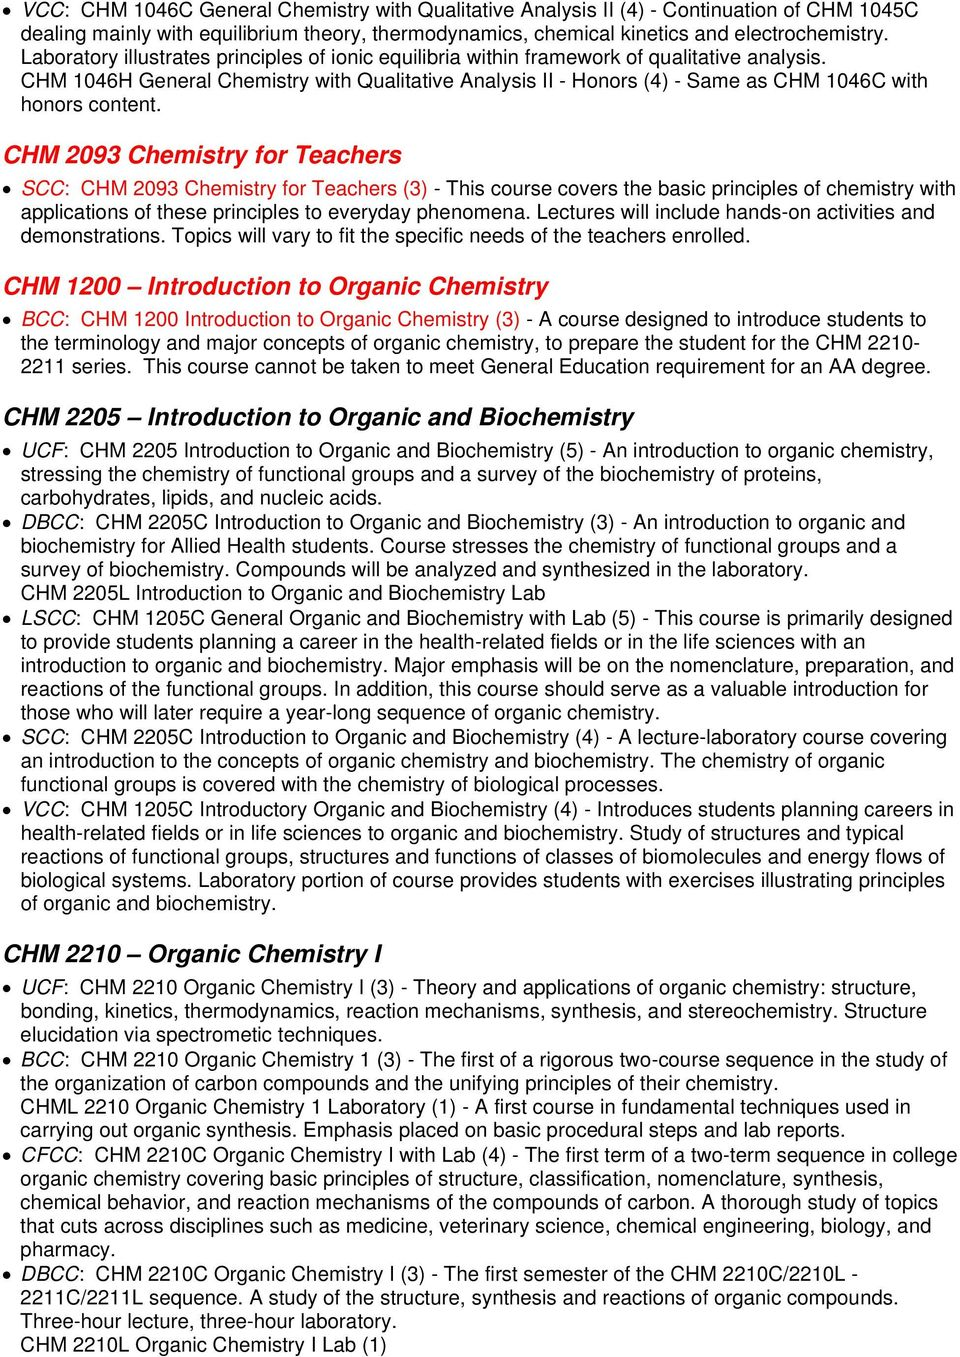 CHM 1046H General Chemistry with Qualitative Analysis II - Honors (4) - Same as CHM 1046C with honors content.